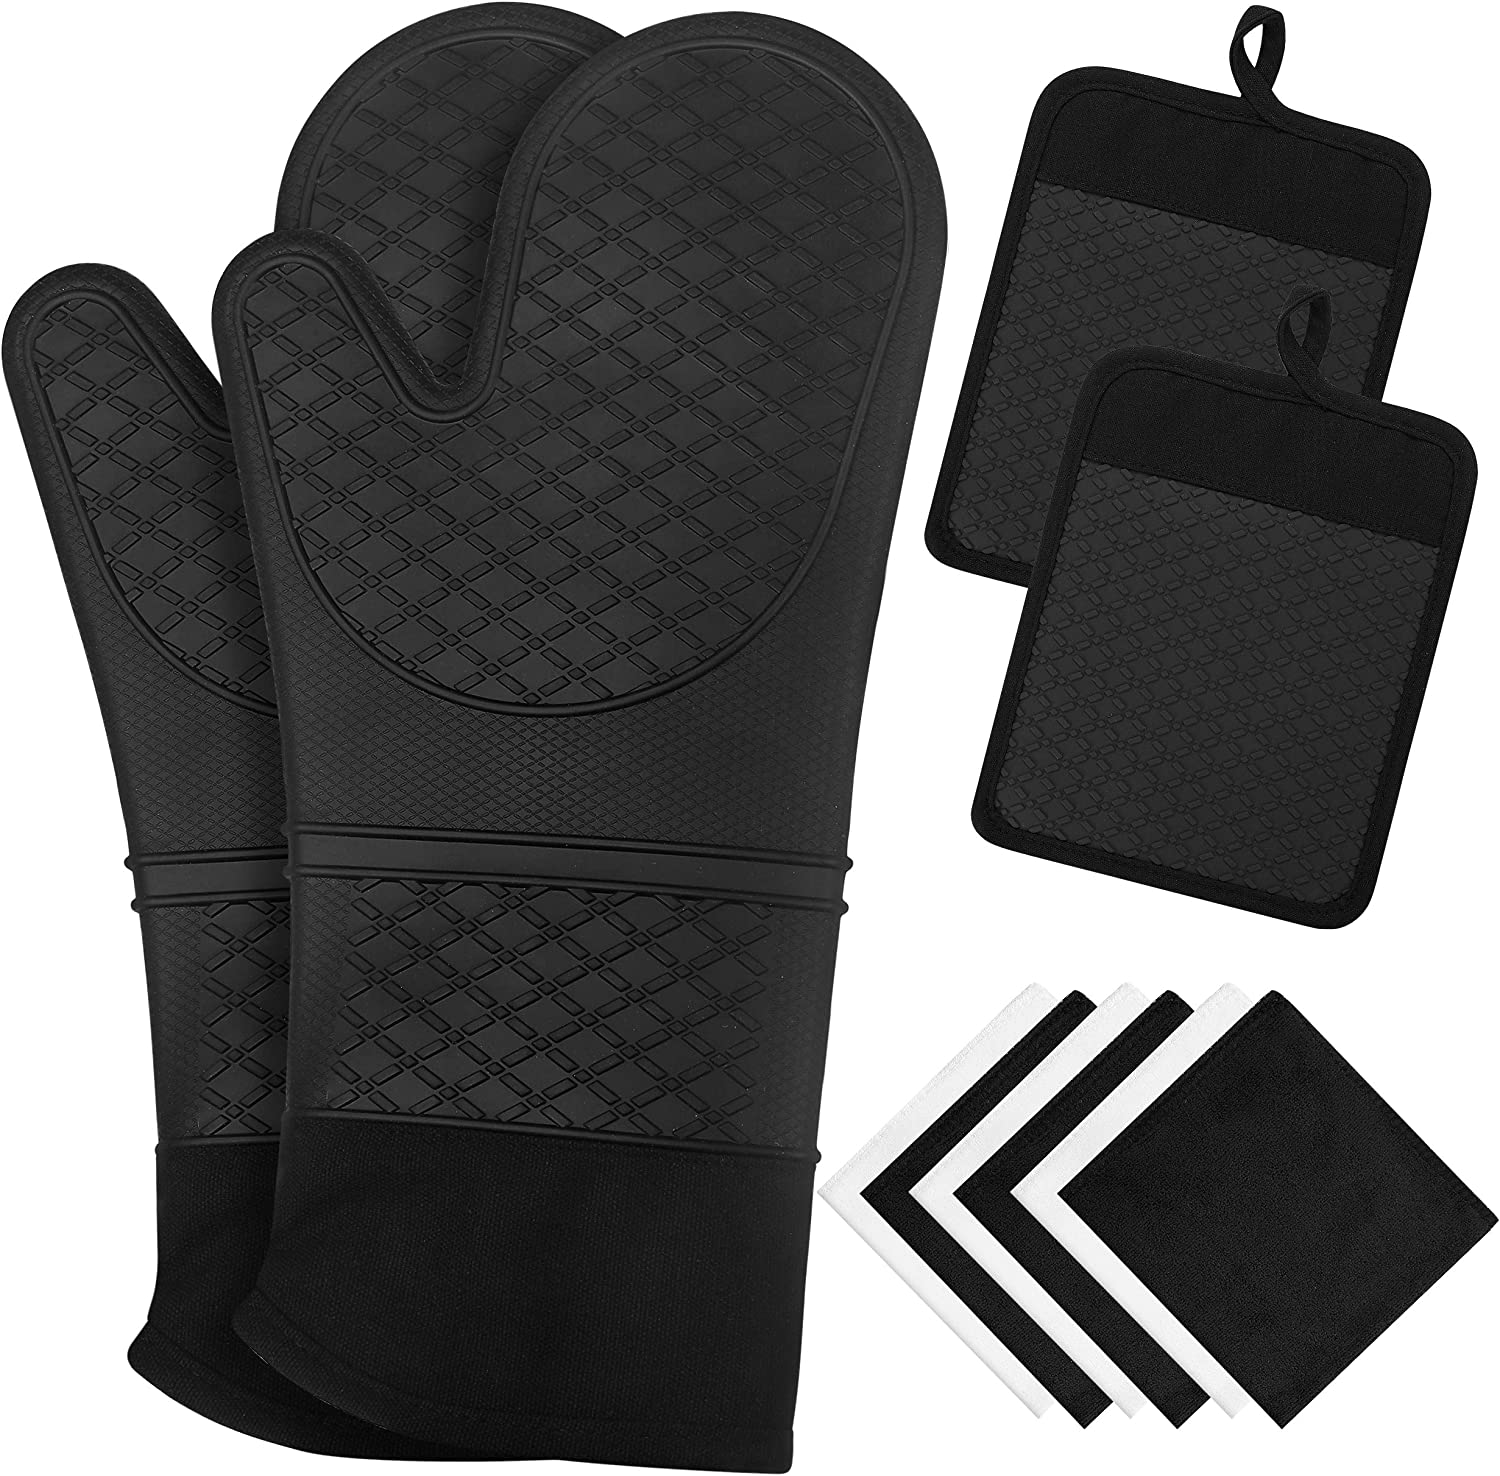 10 Pcs Silicone Oven Mitts and Pot Holders, 450℉ Heat Resistant Oven Mitts with Kitchen Towels Soft Cotton Lining and Non-Slip Surface Safe for Baking, Cooking, BBQ